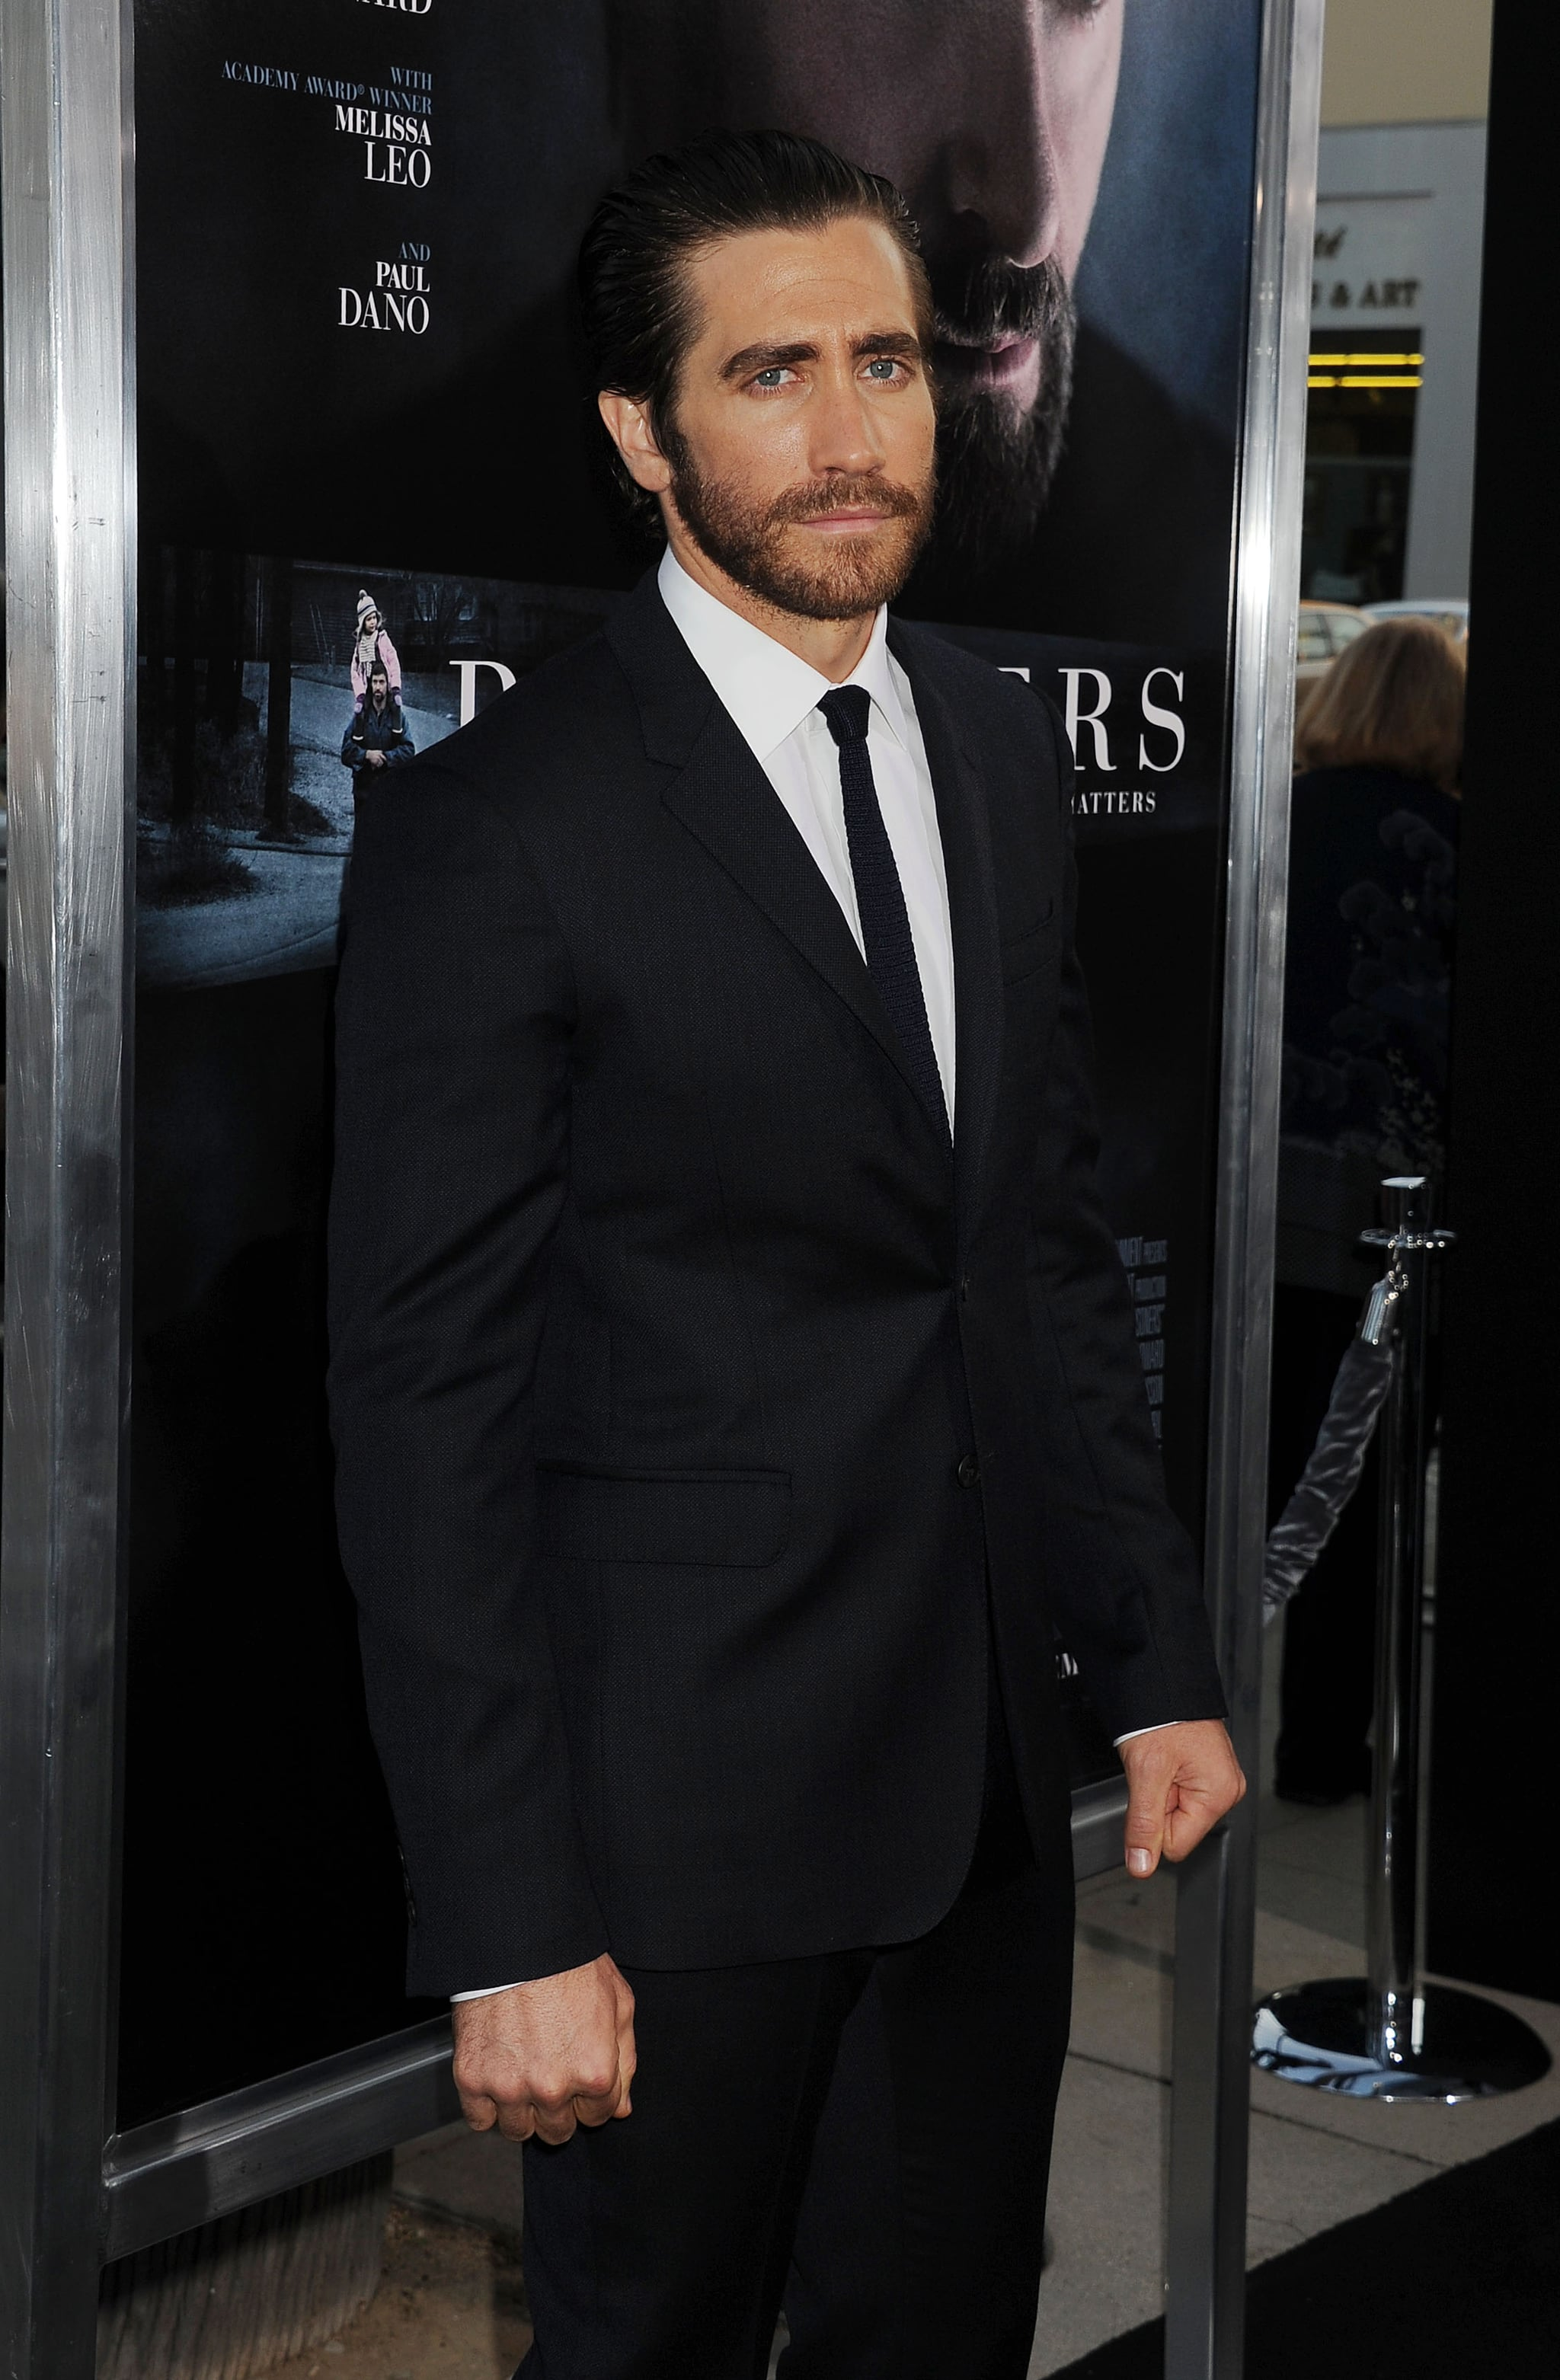 Jake sported a sleek suit and sexy scruff at the LA premiere of Prisoners in September 2013.